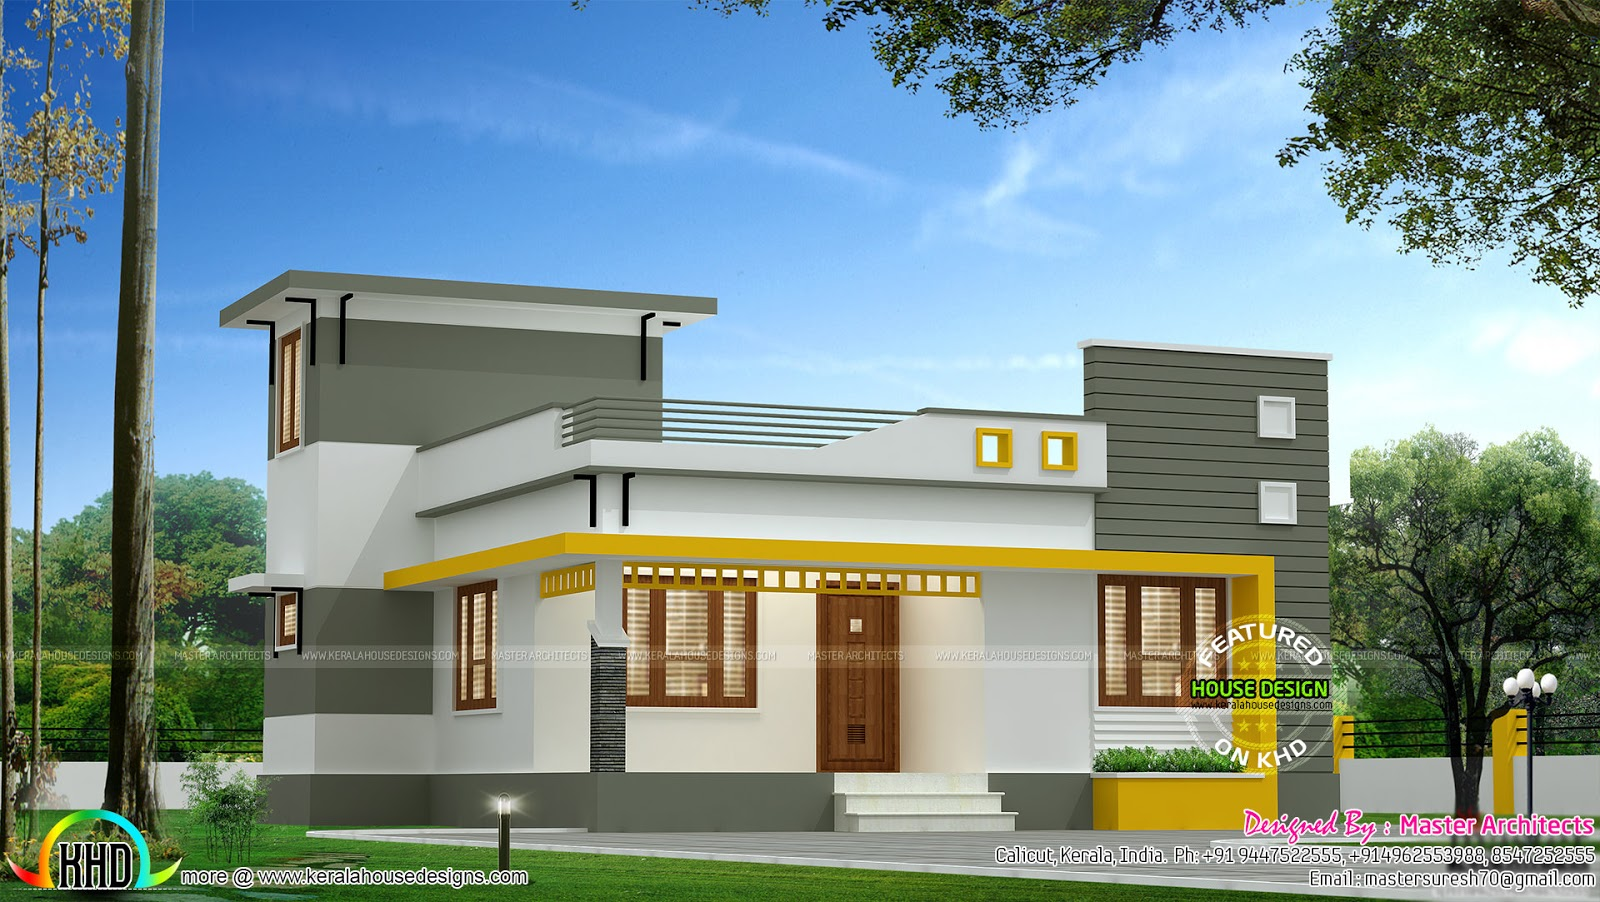 3 bedroom single floor modern architecture home kerala for Single home design